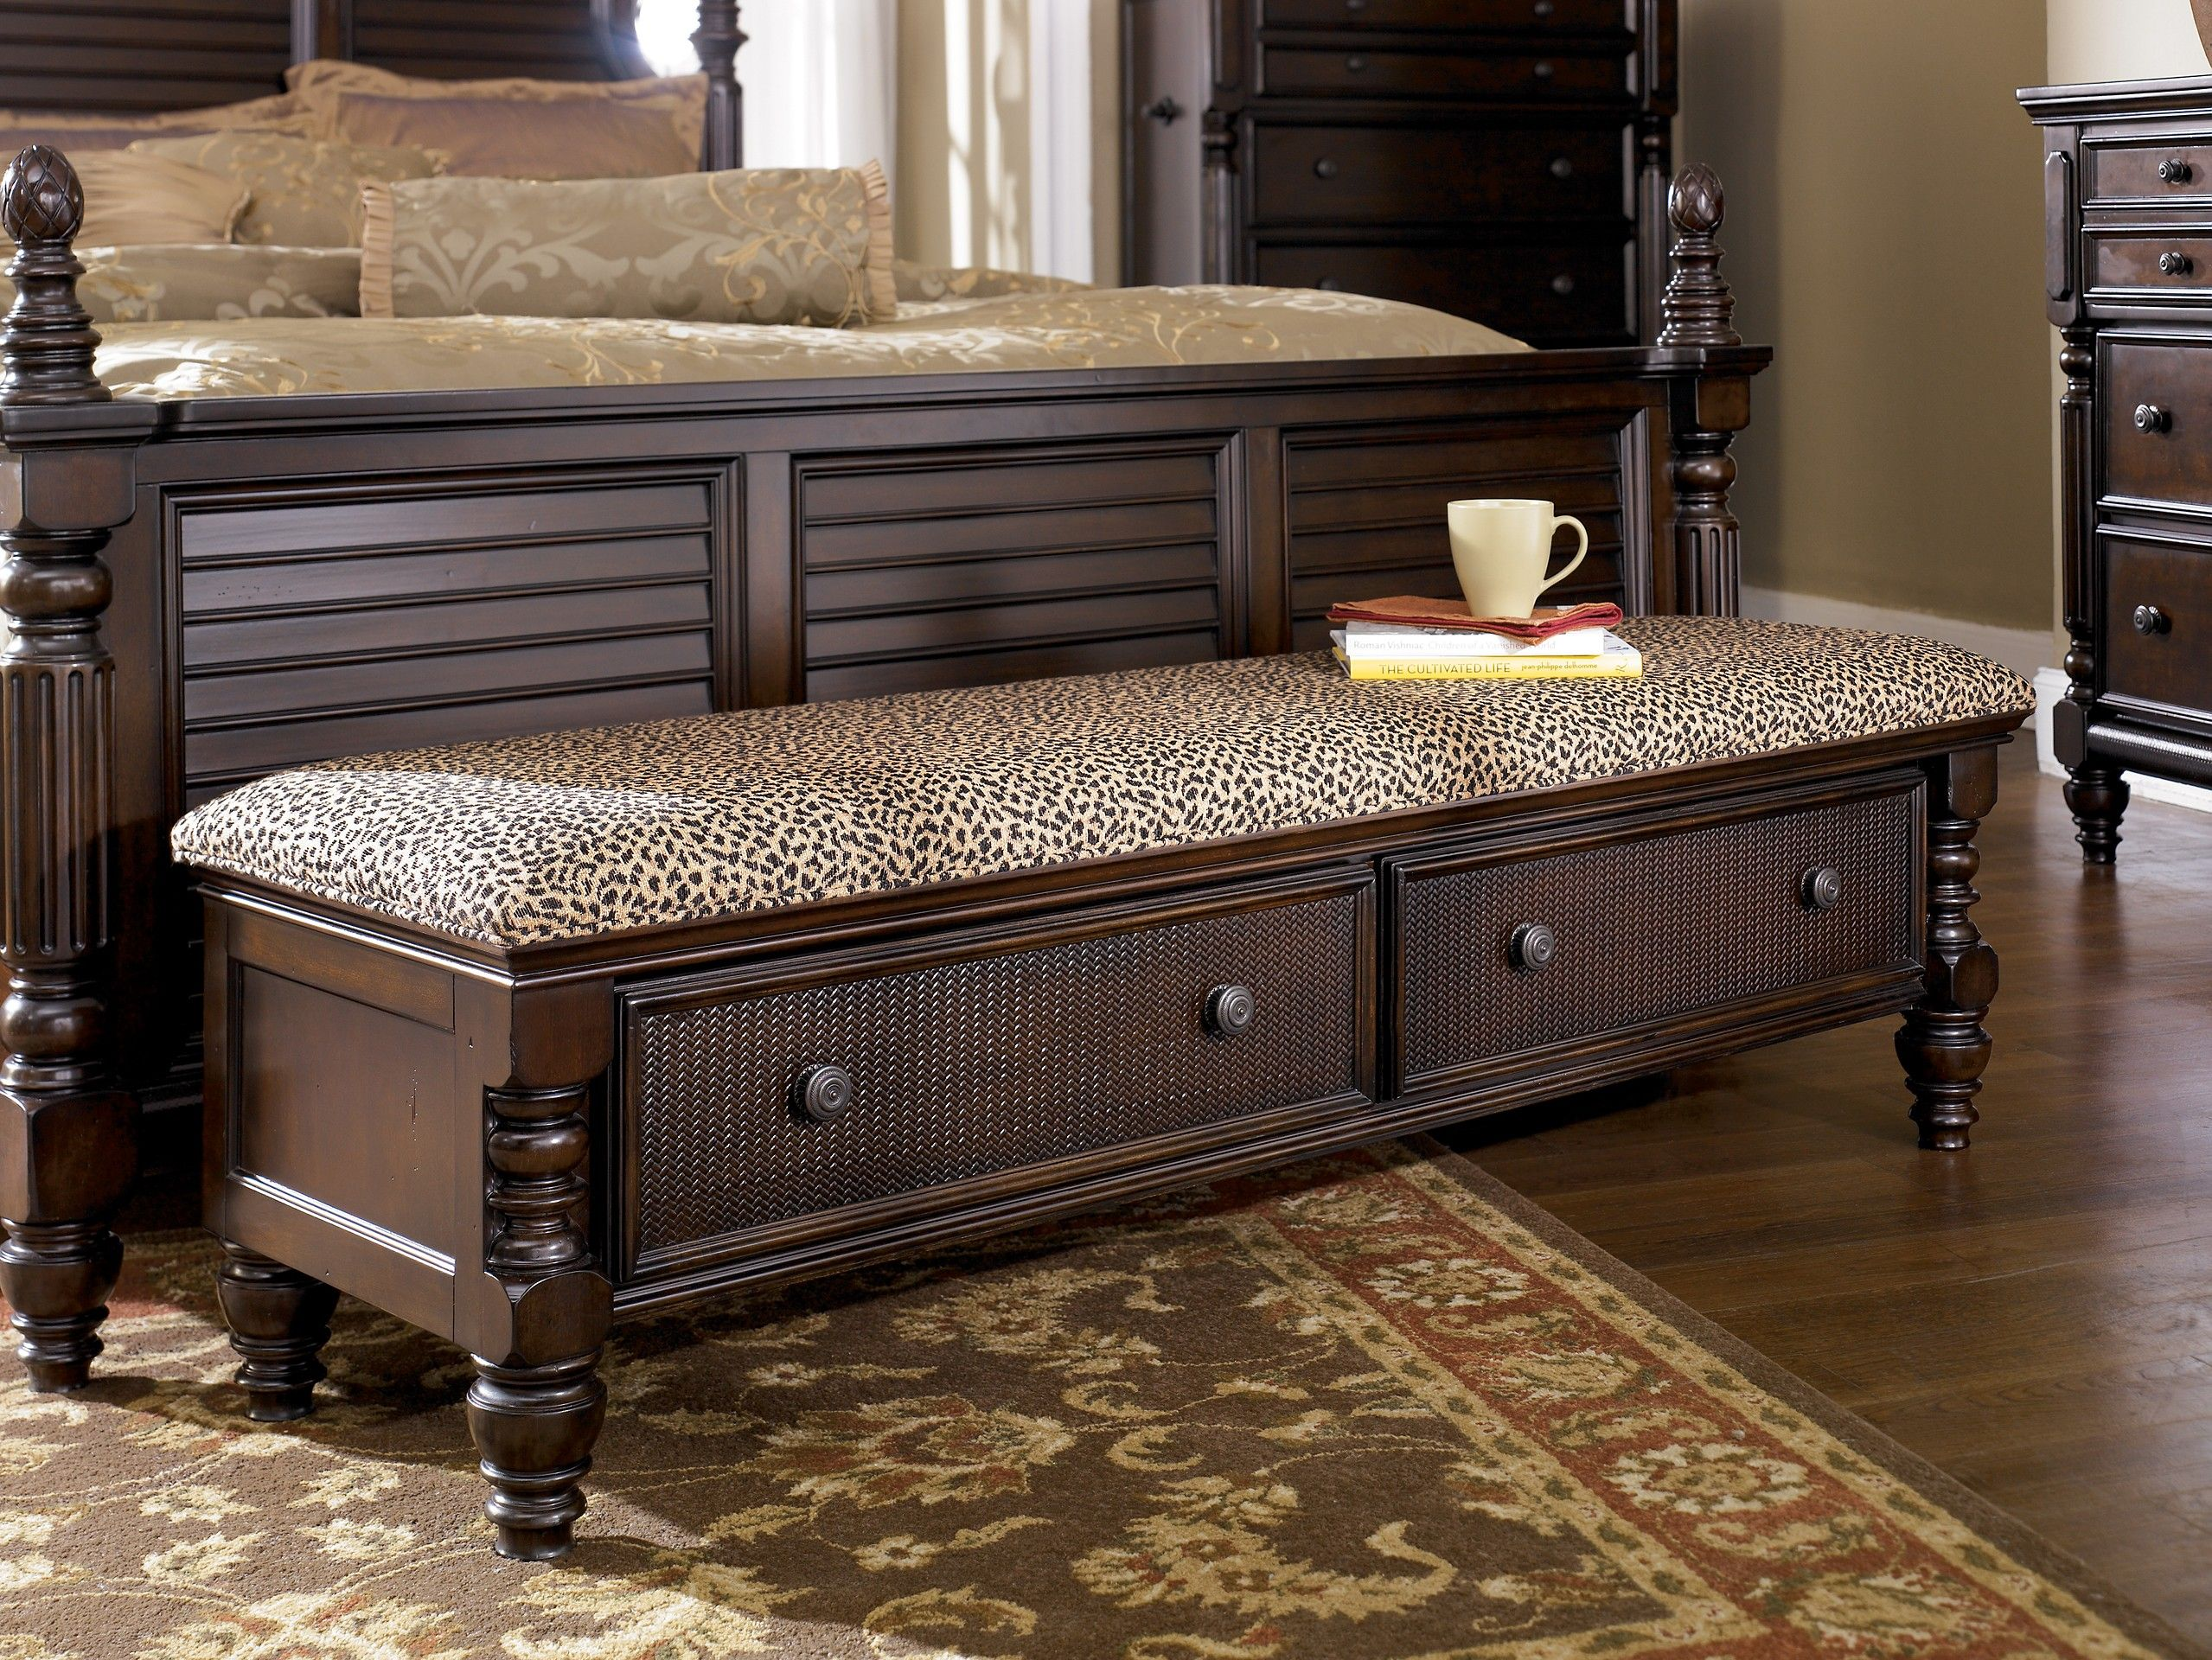 Ashley key town b668 09 millennium dark brown bedroom - Ashley furniture bedroom benches ...